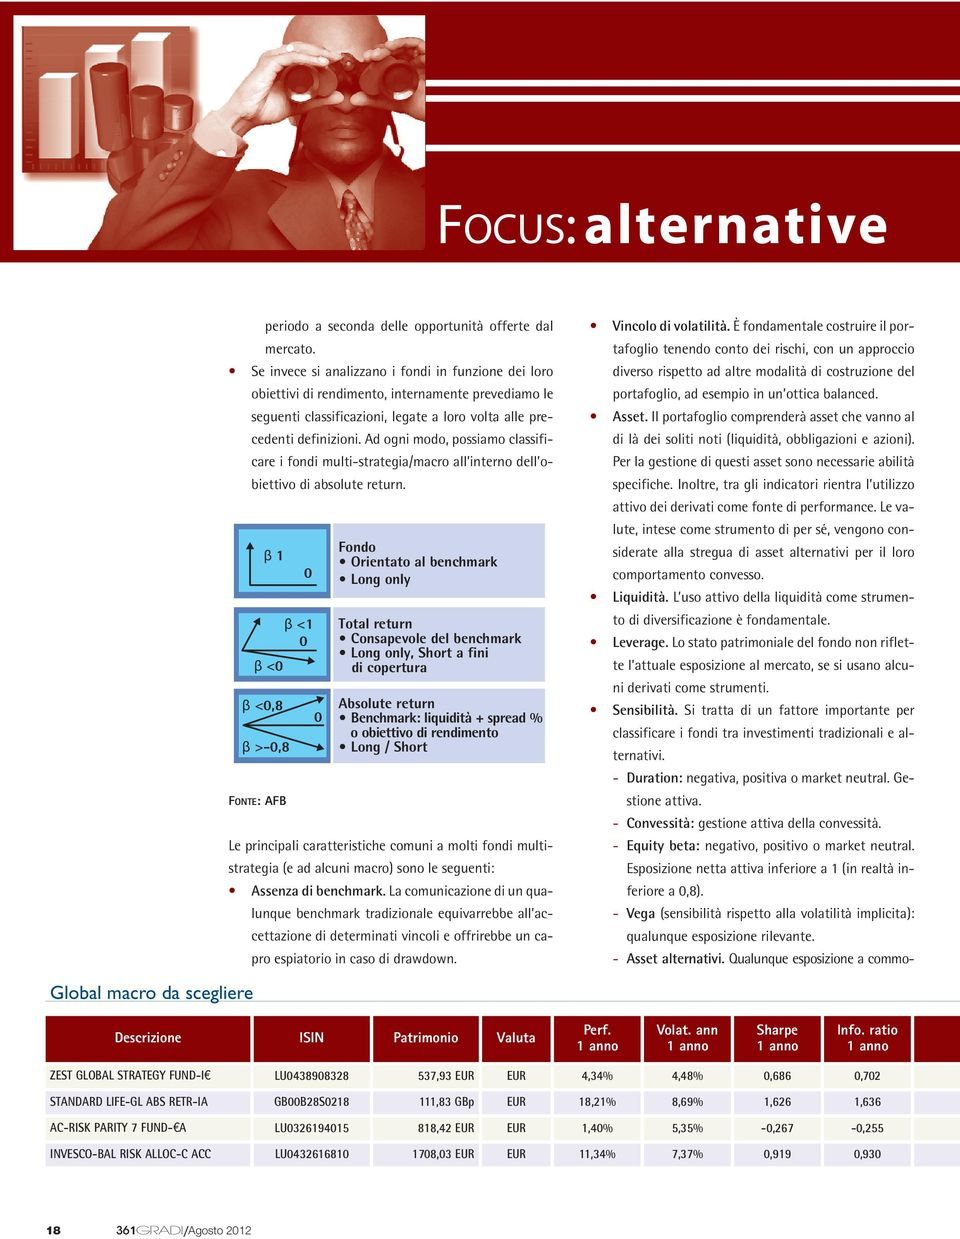 Ad ogni modo, possiamo classificare i fondi multi-strategia/macro all interno dell obiettivo di absolute return.